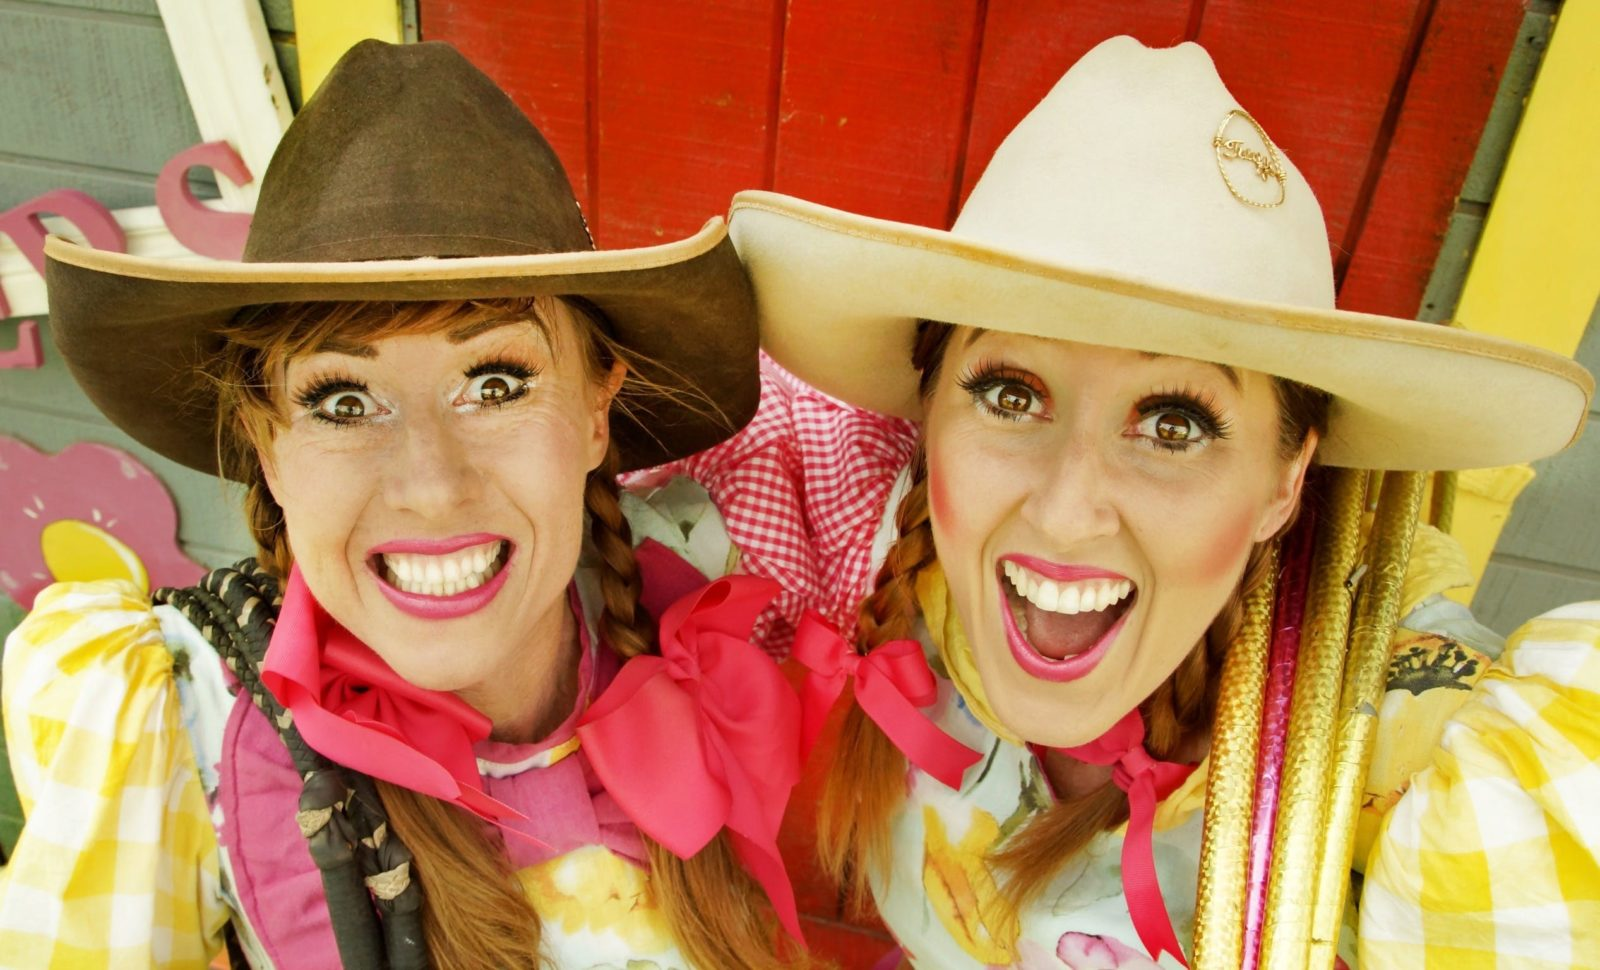 The Crackup Sisters are part of a fun lineup of entertainment at Young Show this year.